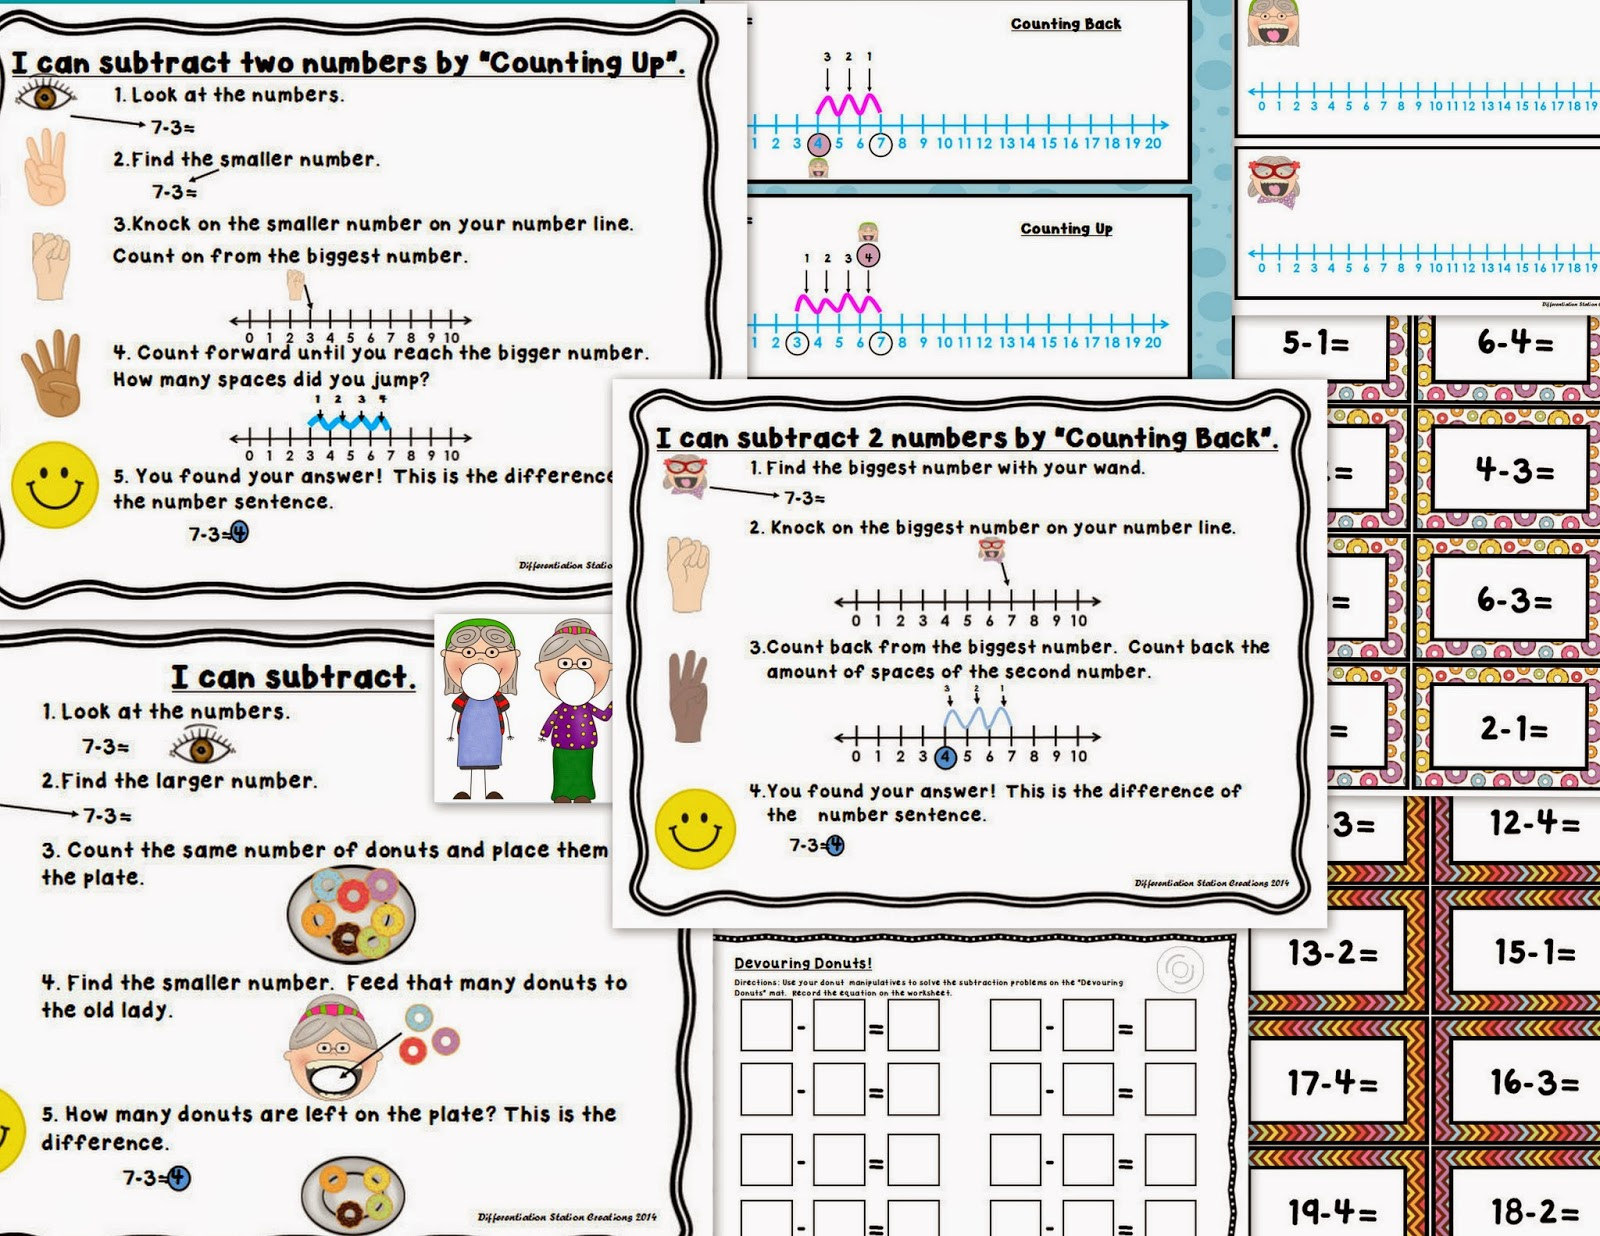 http://www.teacherspayteachers.com/Product/Devouring-Donuts-Number-Line-0-20-Subtraction-Active-Learning-1177212